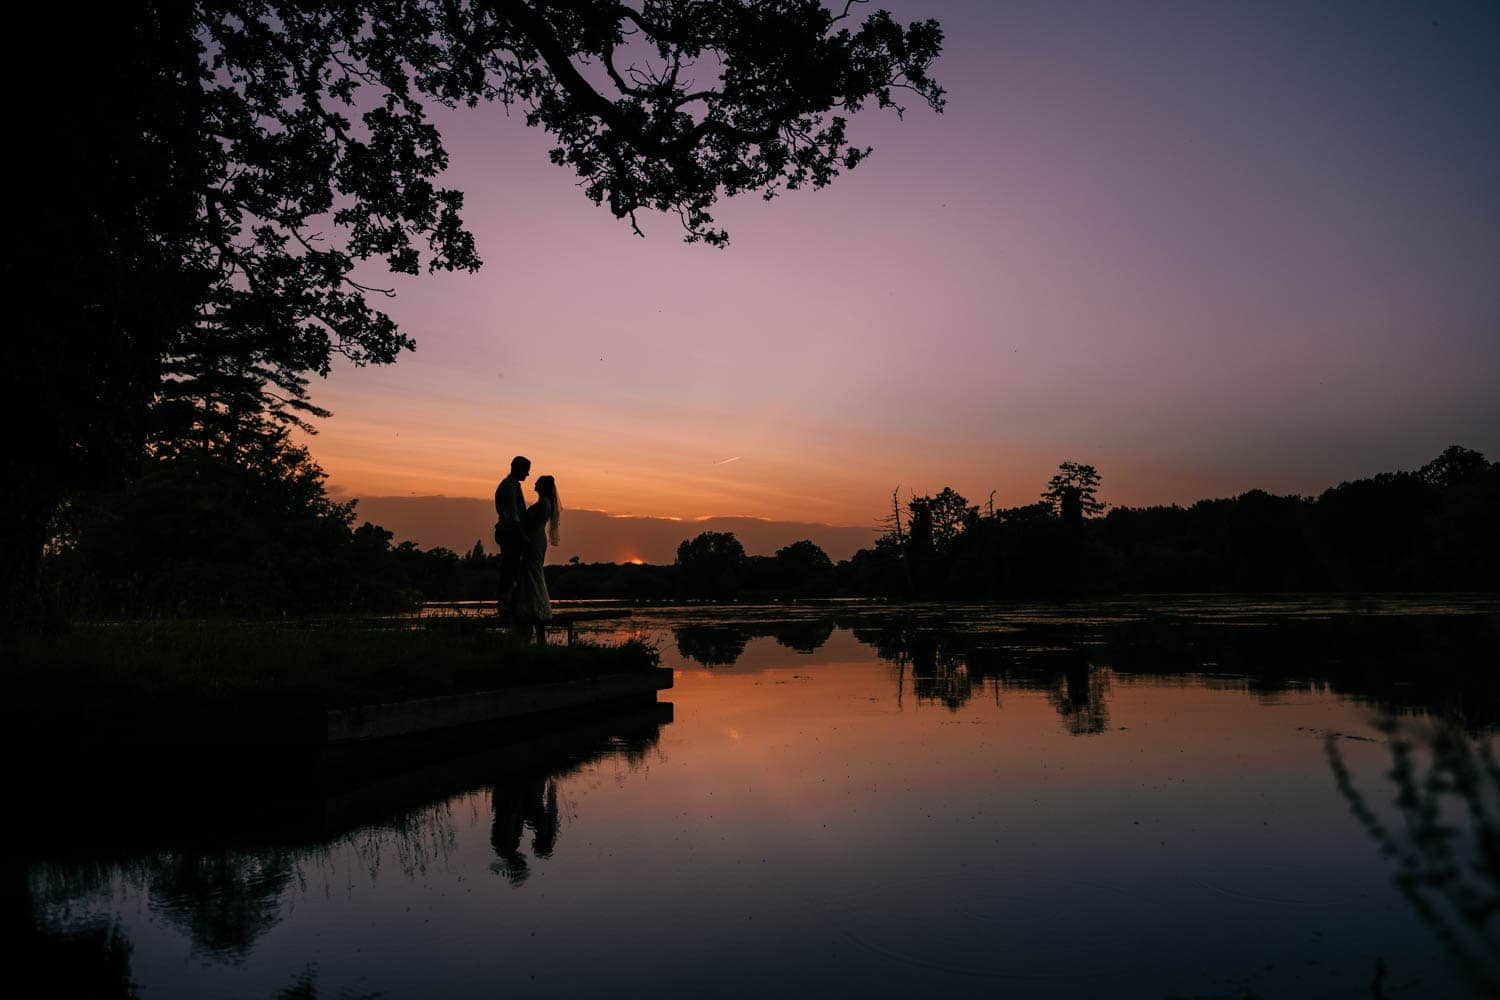 Beautiful sunset at Stradsett Hall Wedding Venue